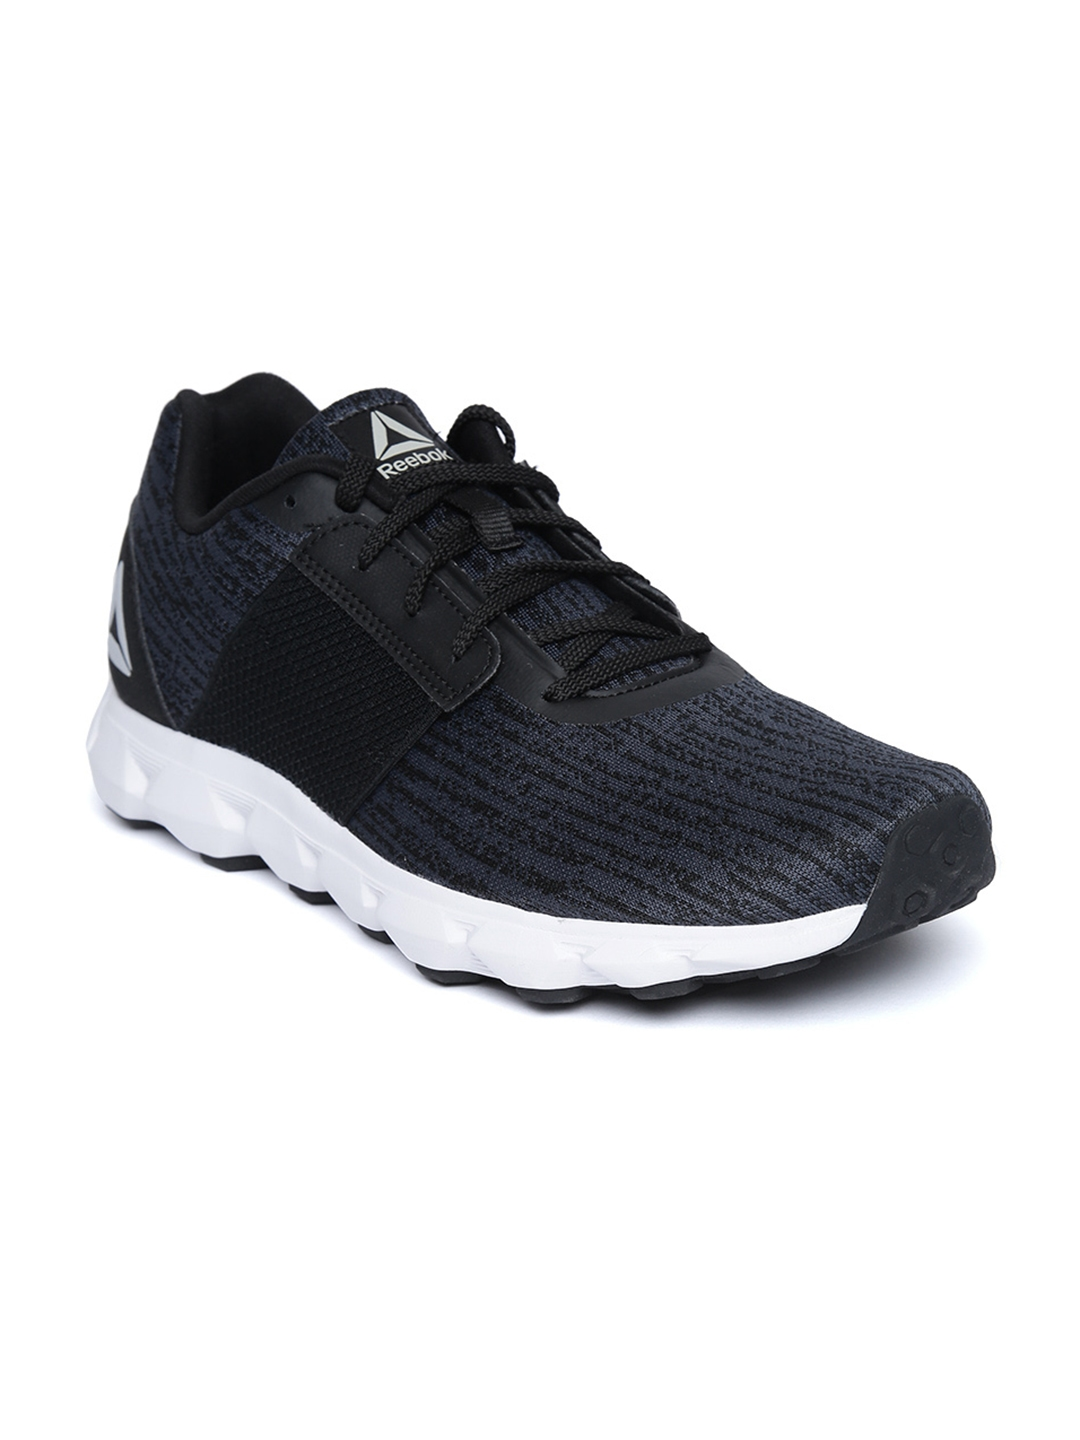 Buy Reebok Men Navy Blue   Black City Scape LP Running Shoes ... 395bf8c64